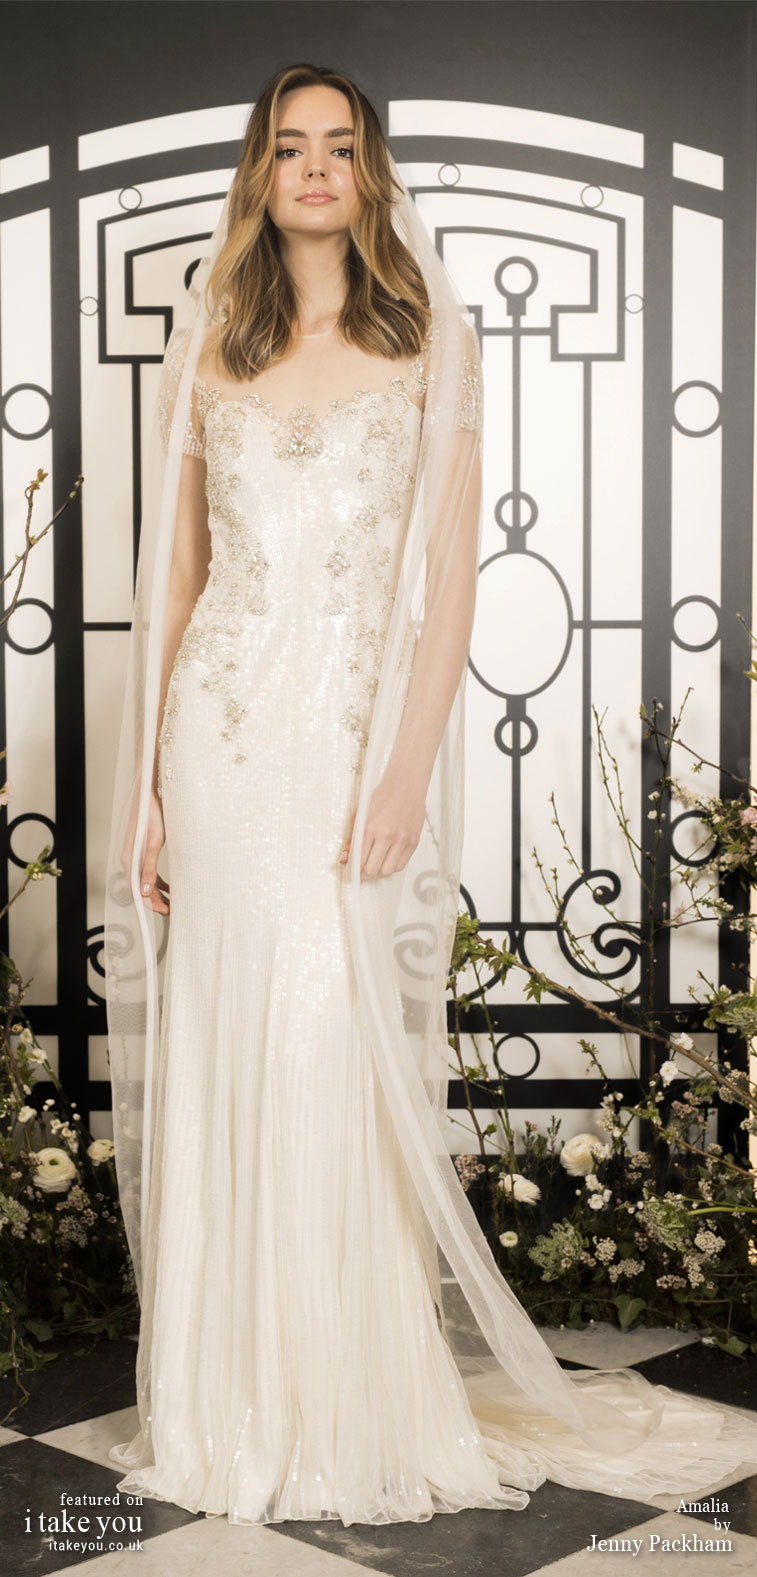 Jenny Packham 2020 Spring Bridal Collection